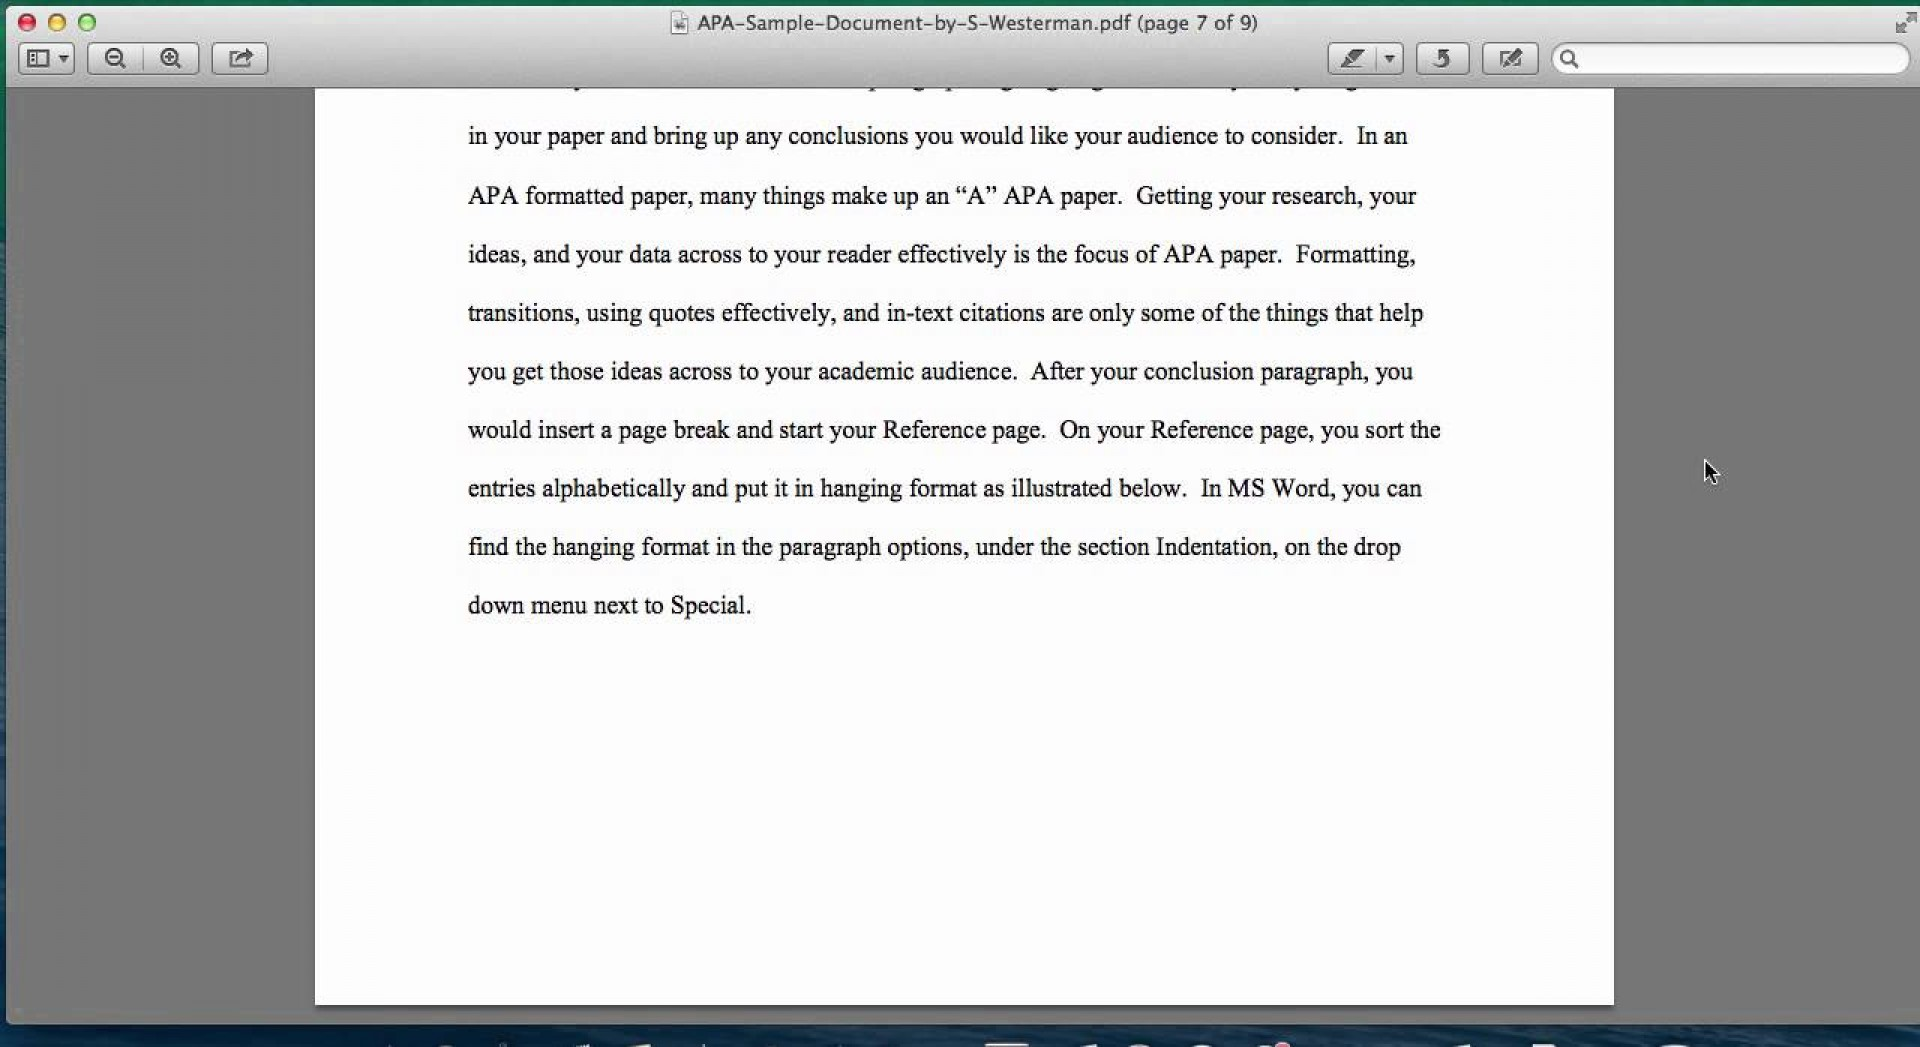 001 Research Paper Conclusion Apa Amazing Sample Style Example 1920